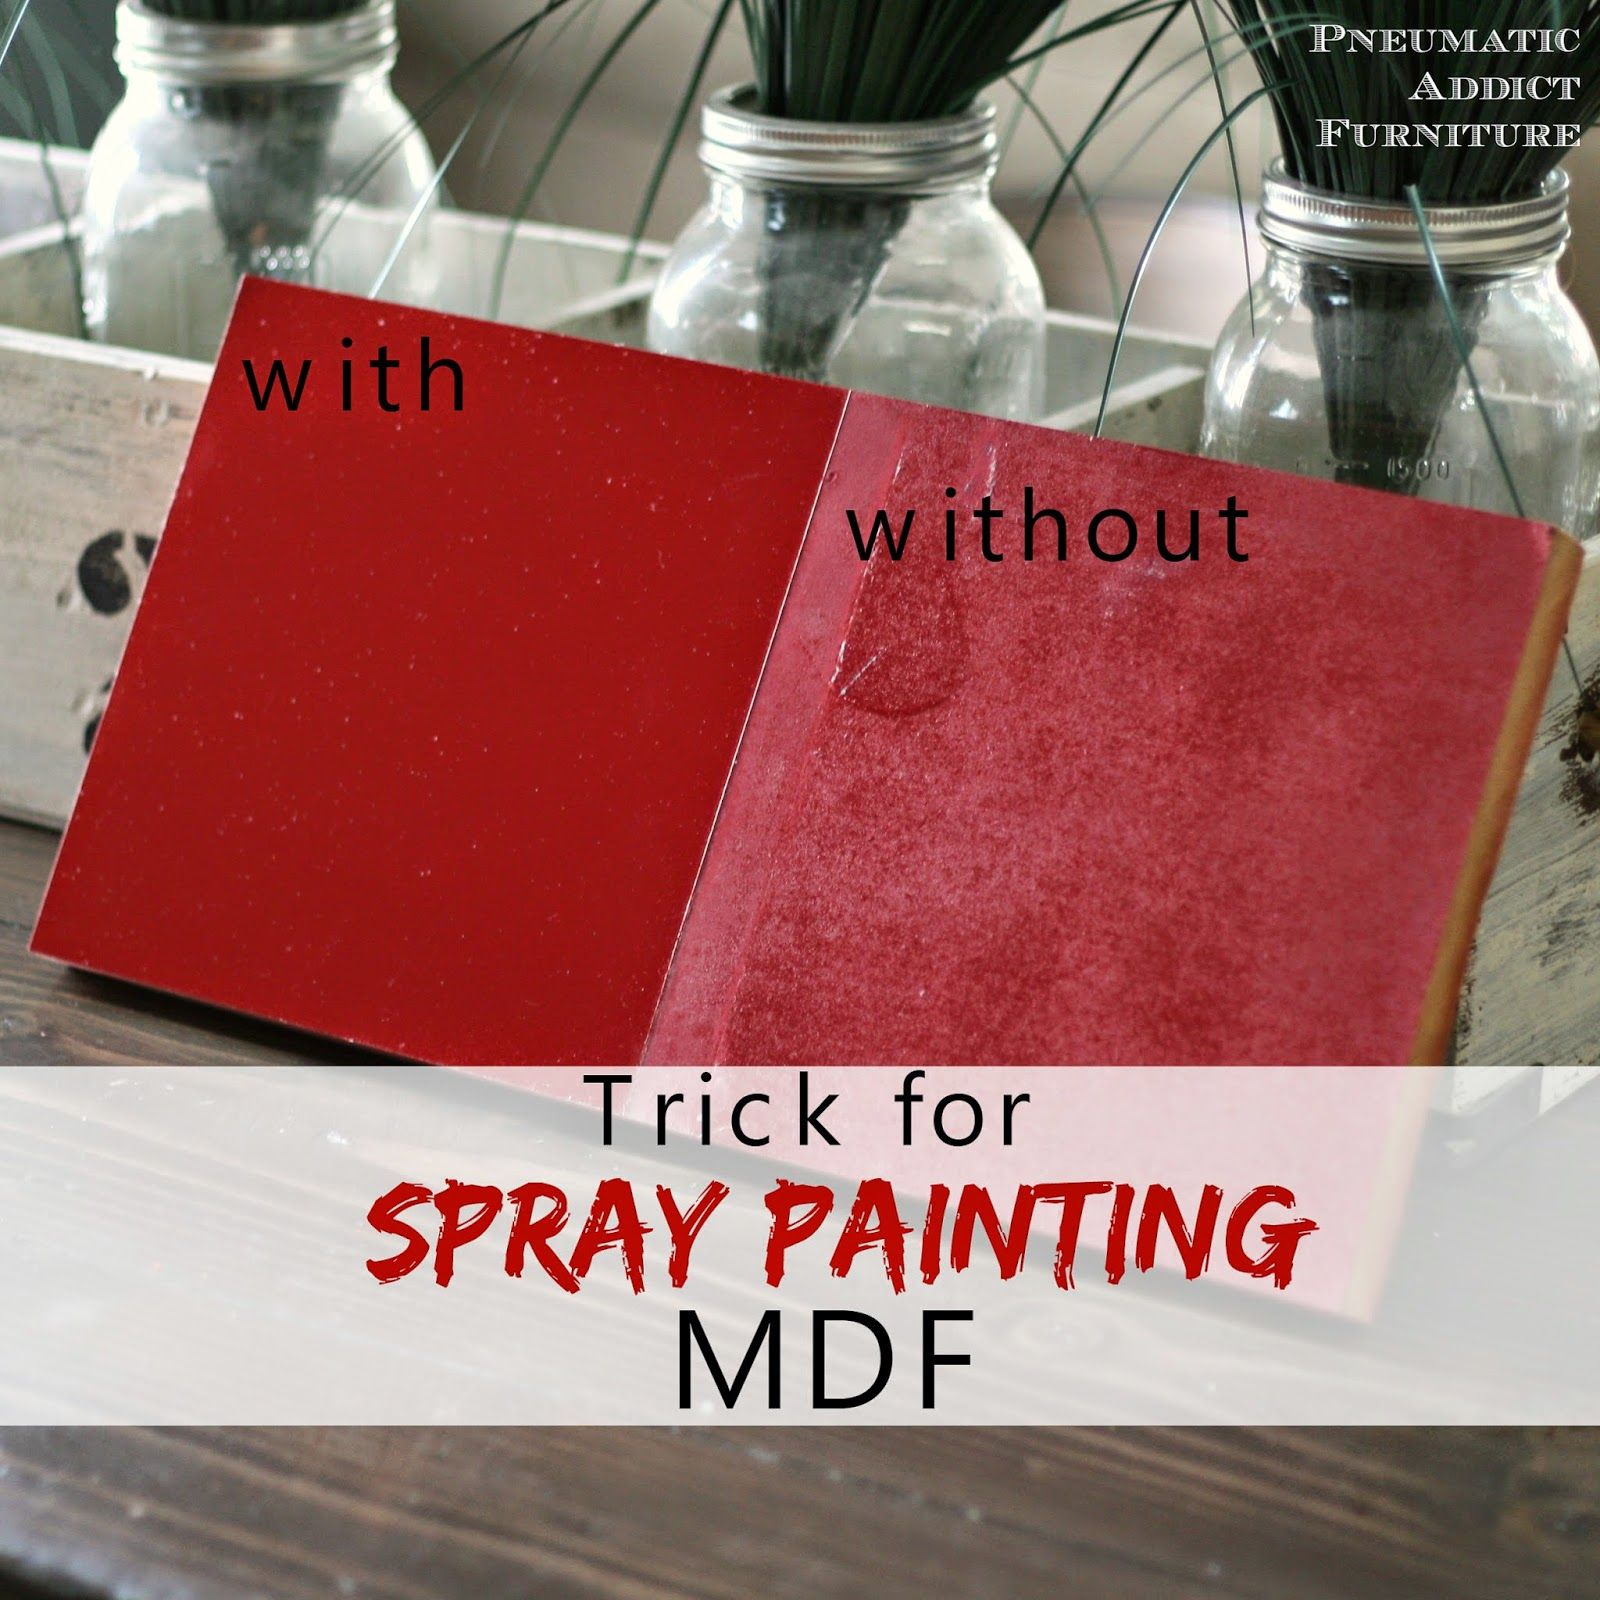 Trick For Spray Painting Mdf Spray Paint Furniture Spray Painting Painting Mdf Board